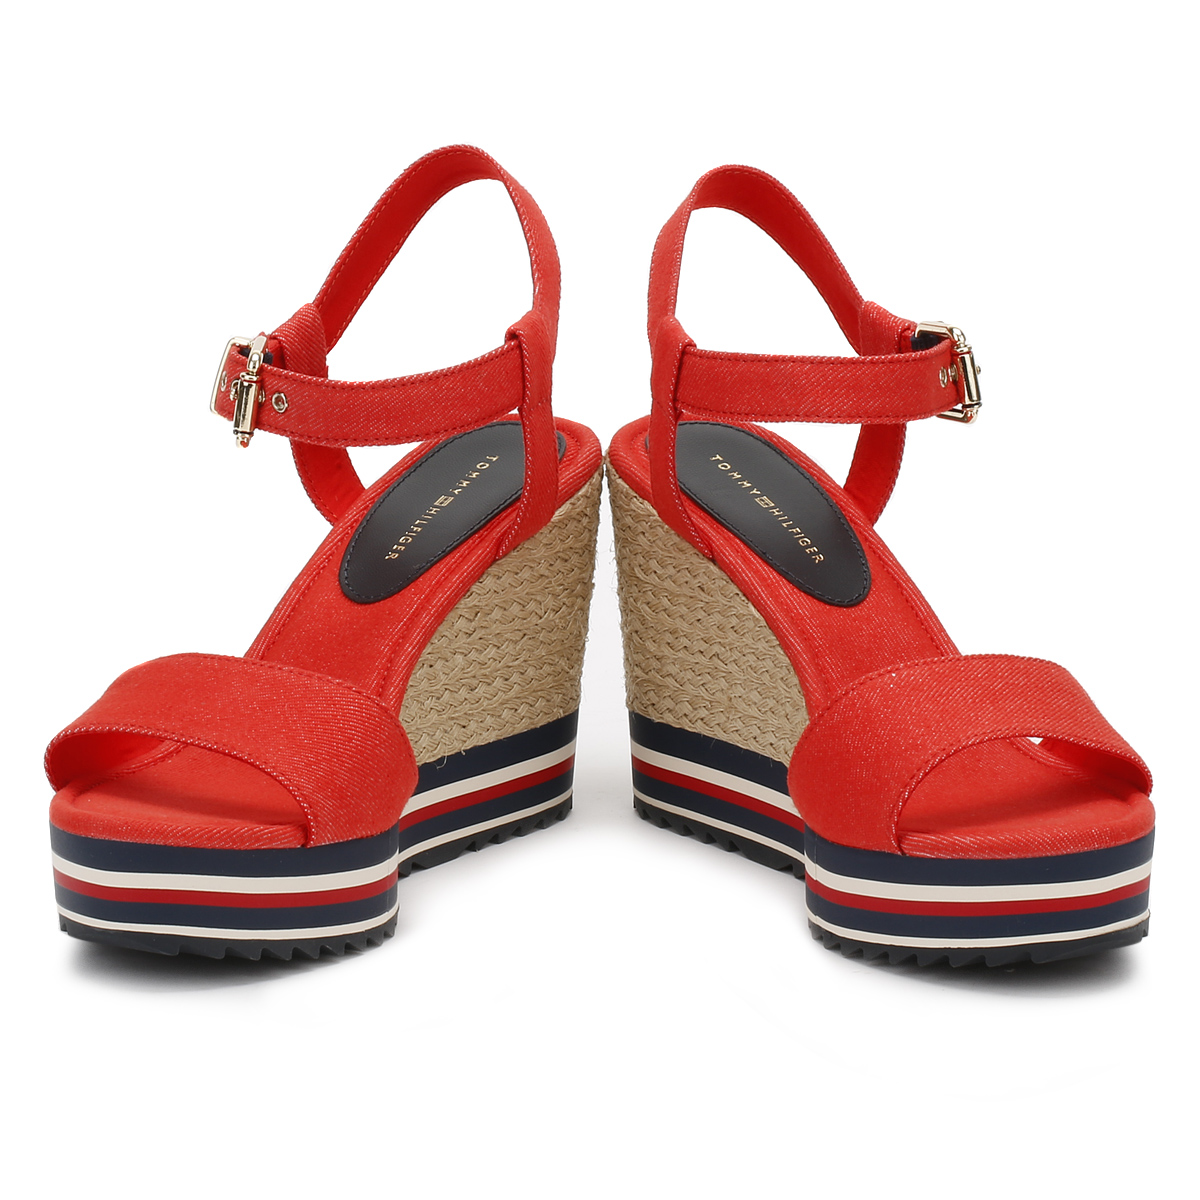 4d69e6e415c730 Tommy Hilfiger Womens Red   Black Wedge Sandals